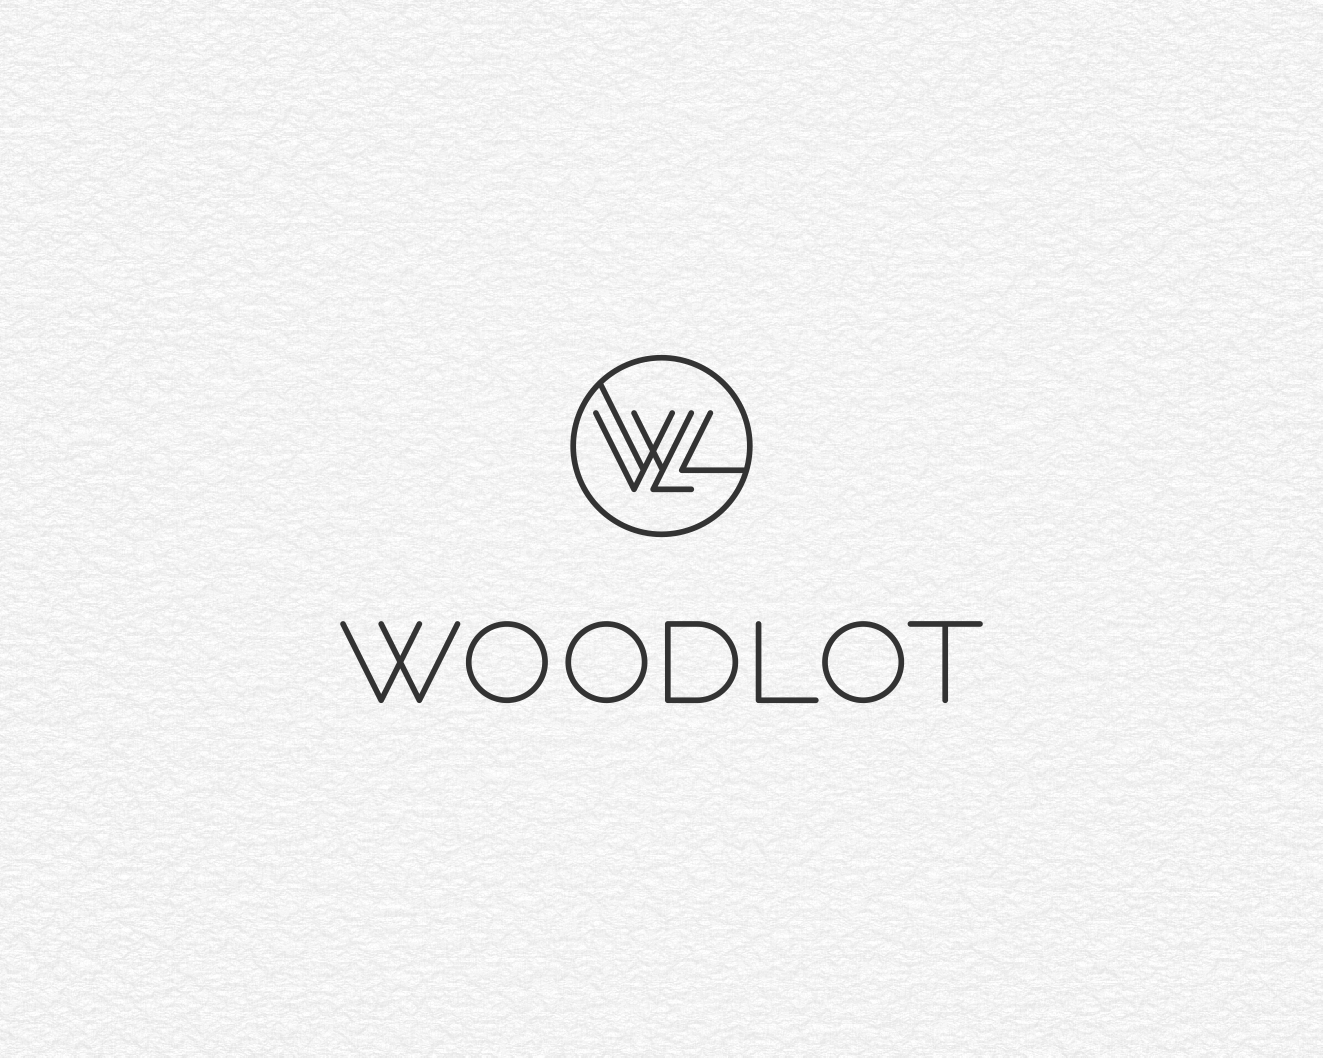 Logo Design by Rares.Andrei - Entry No. 52 in the Logo Design Contest Fun Logo Design for woodlot.